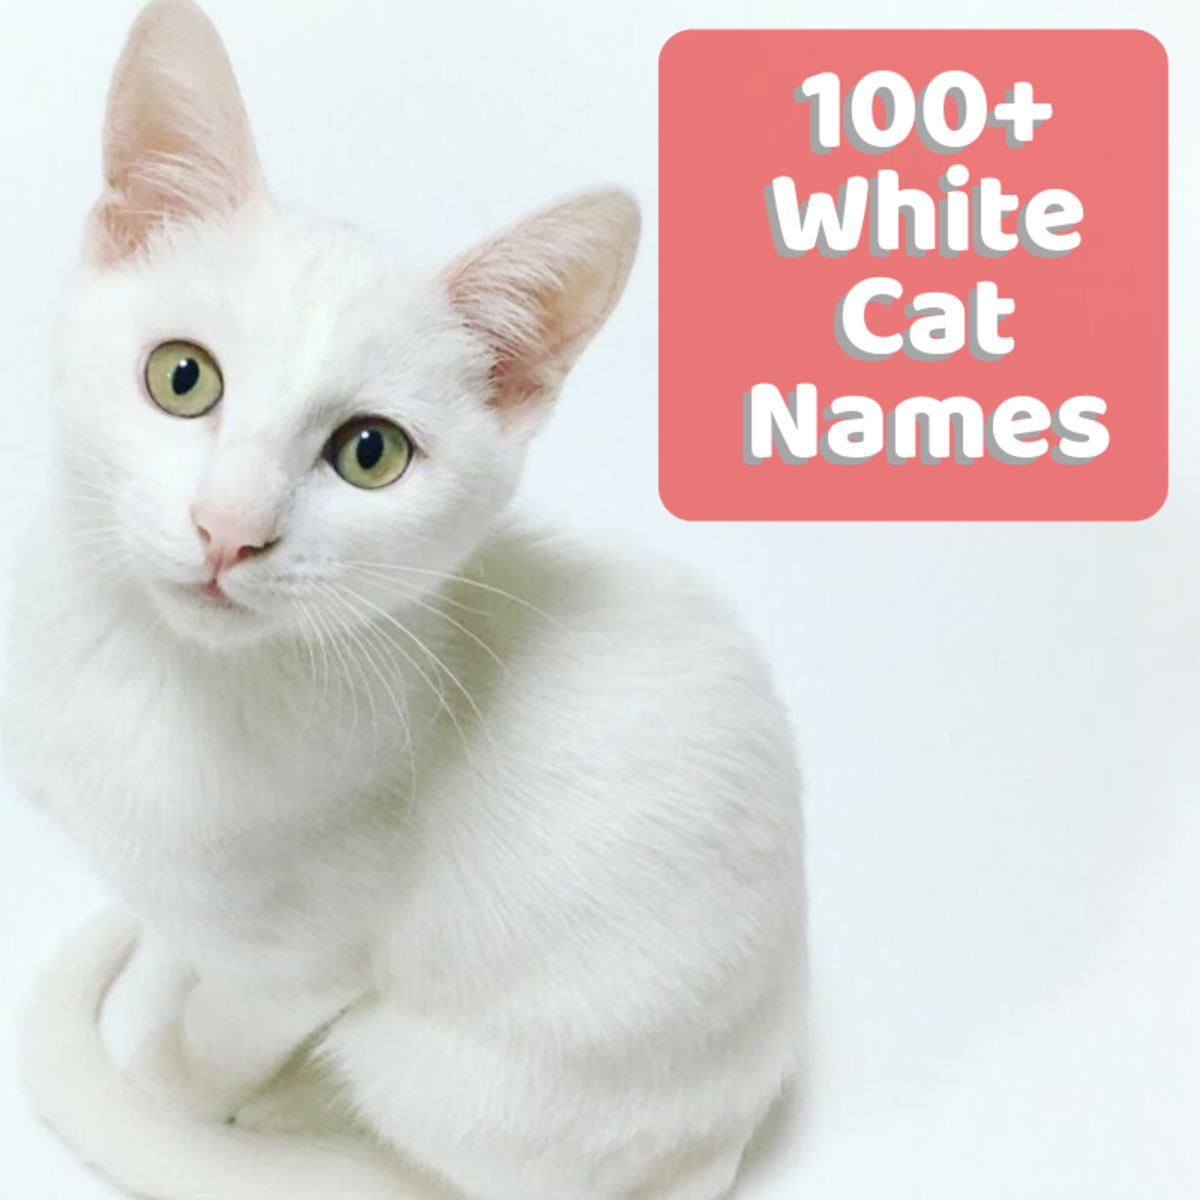 Naming a new pet is tough—use this list of white cat names for inspiration!